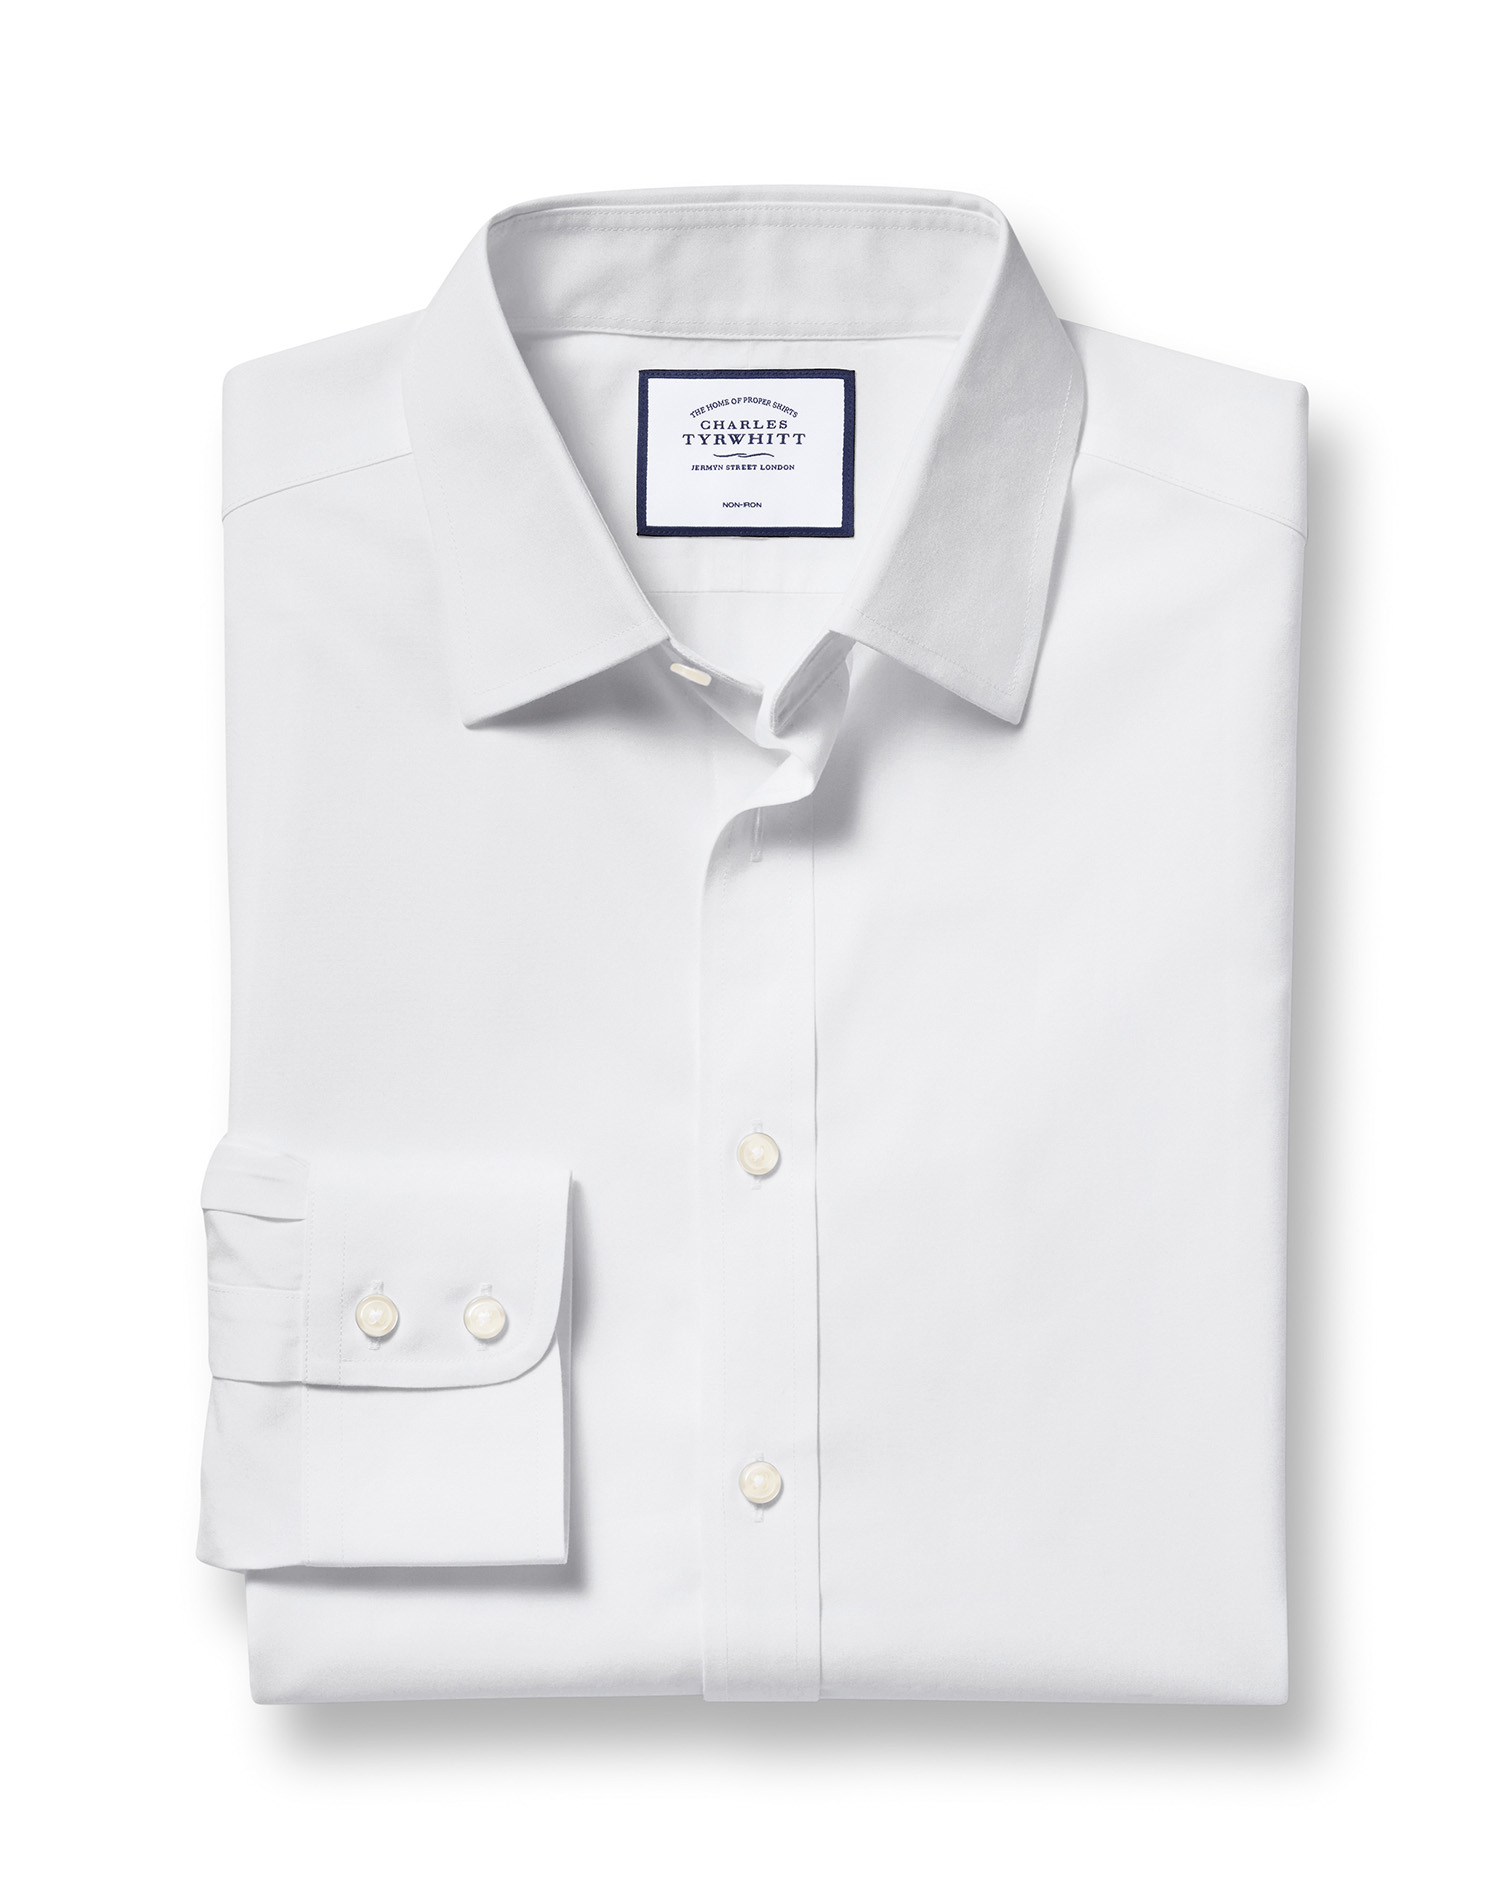 Classic Fit Non-Iron Poplin White Cotton Formal Shirt Single Cuff Size 17/36 by Charles Tyrwhitt